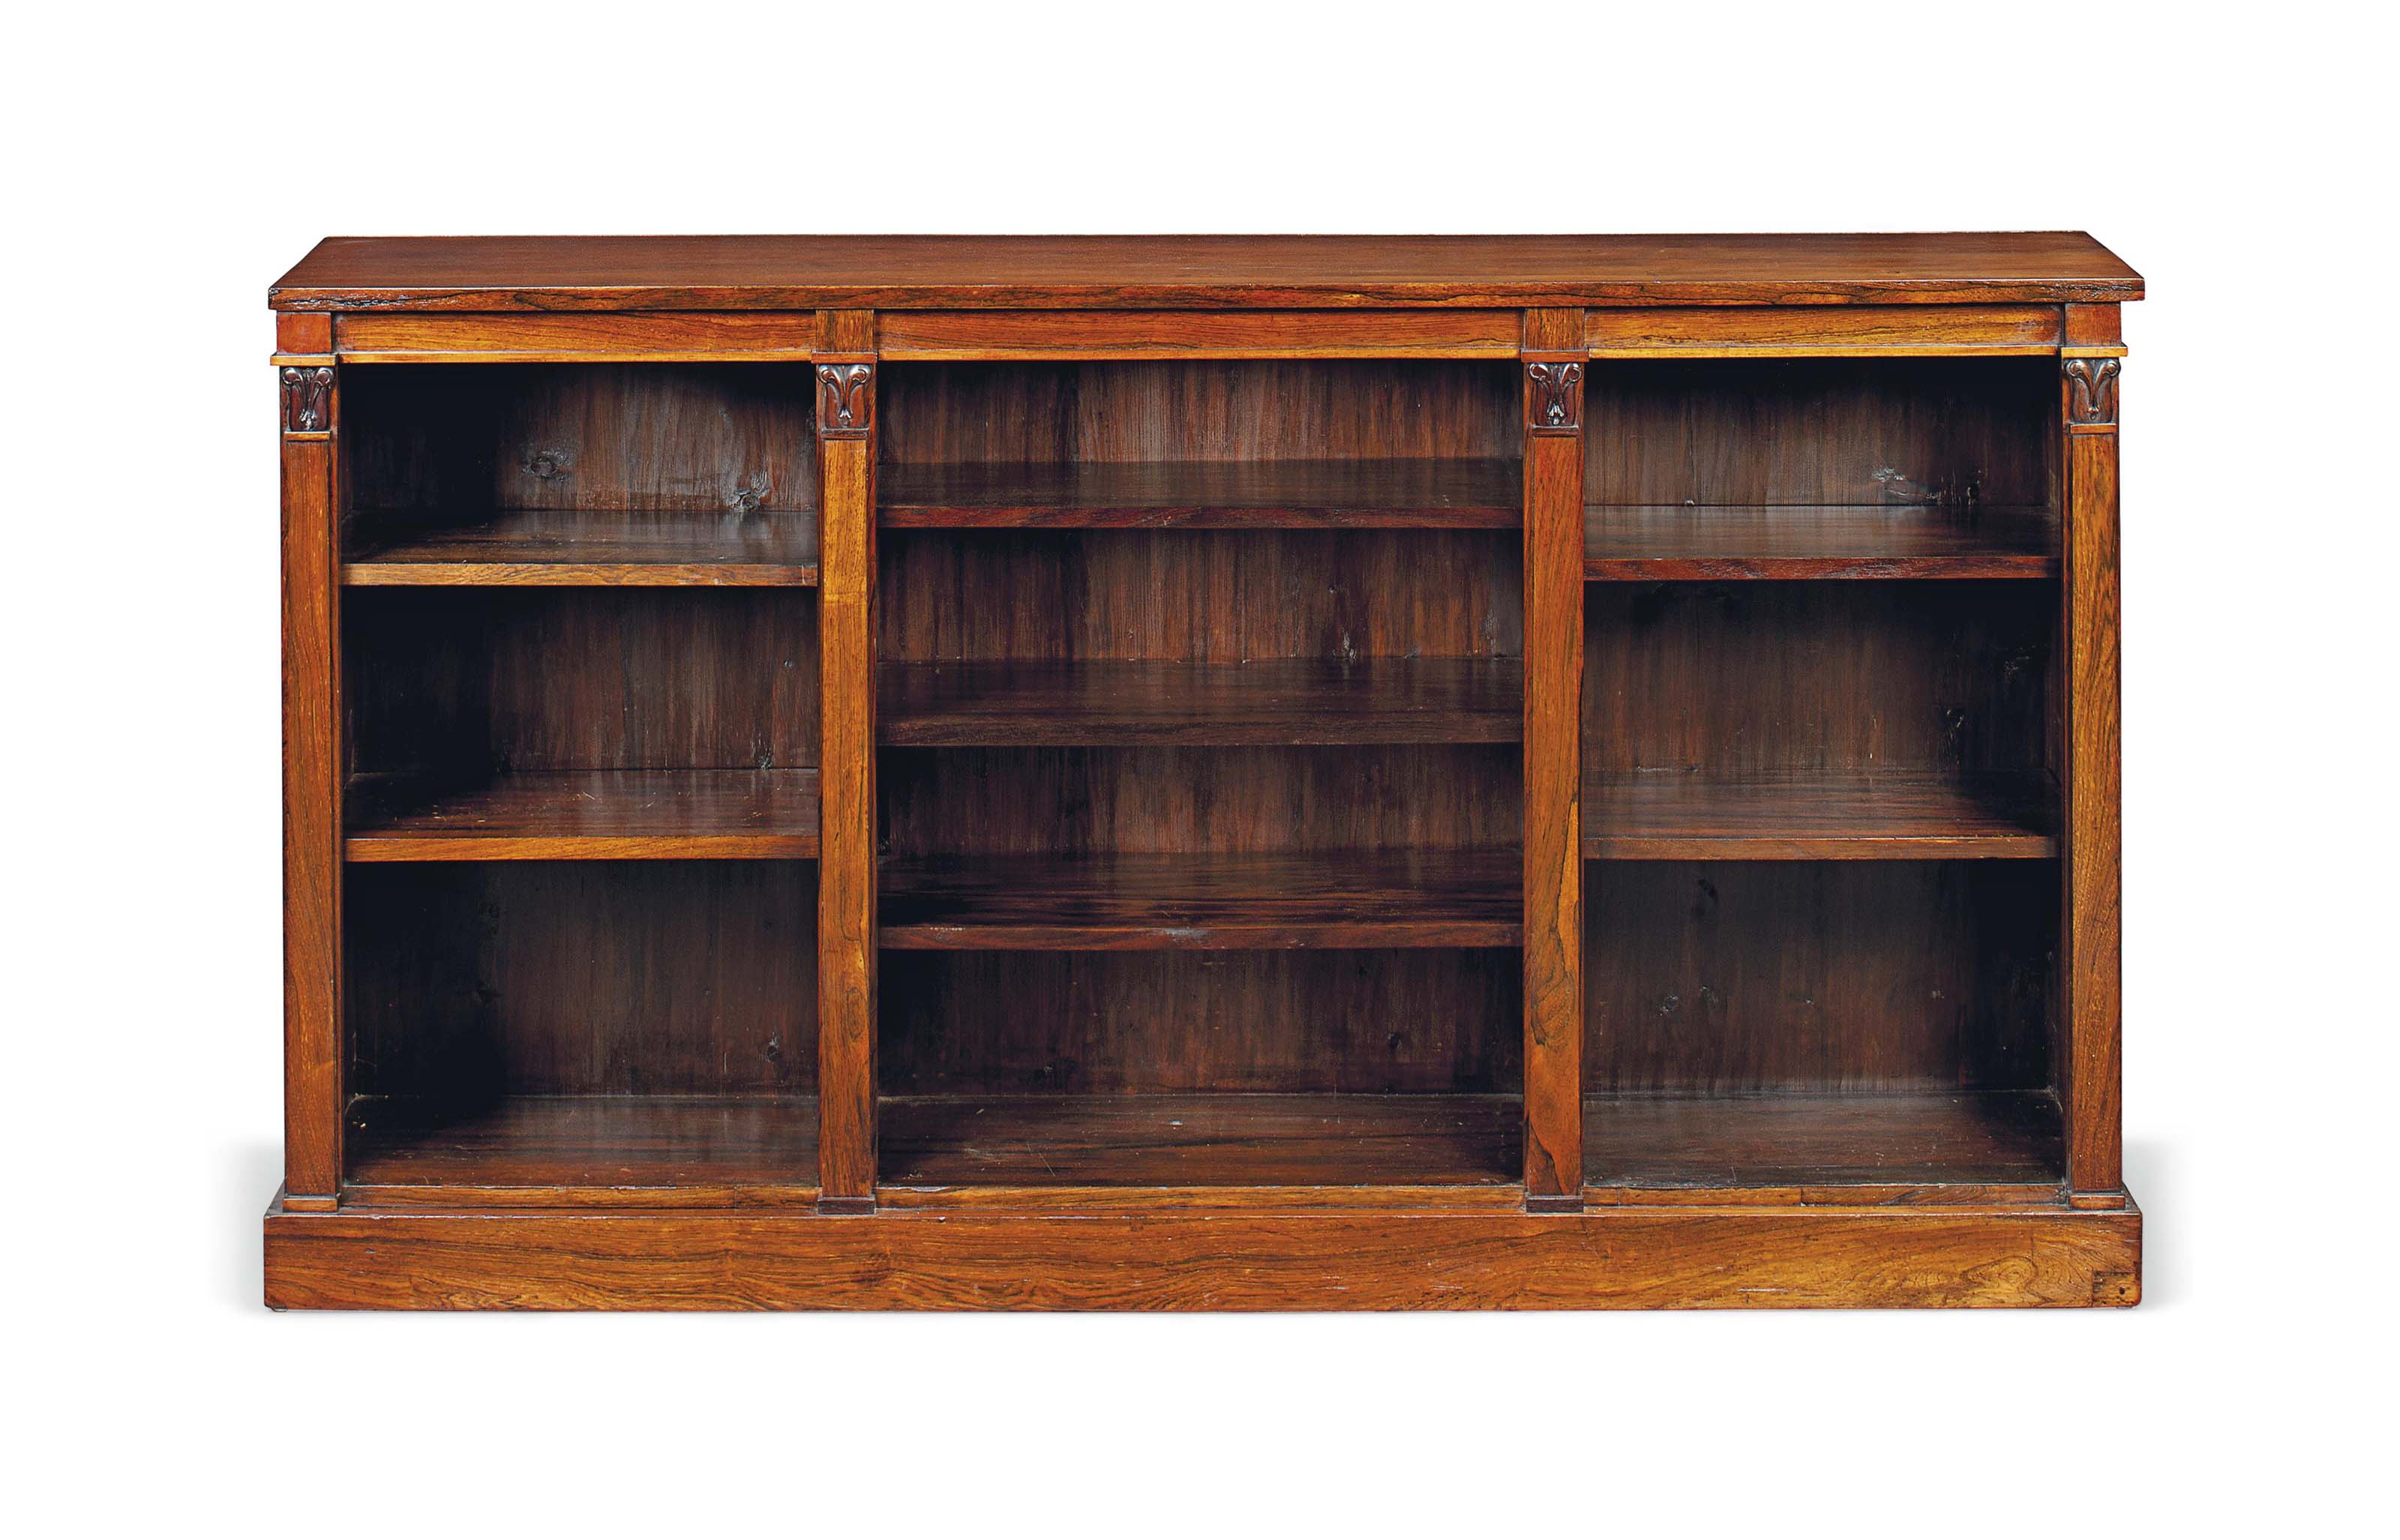 AN EARLY VICTORIAN ROSEWOOD OP